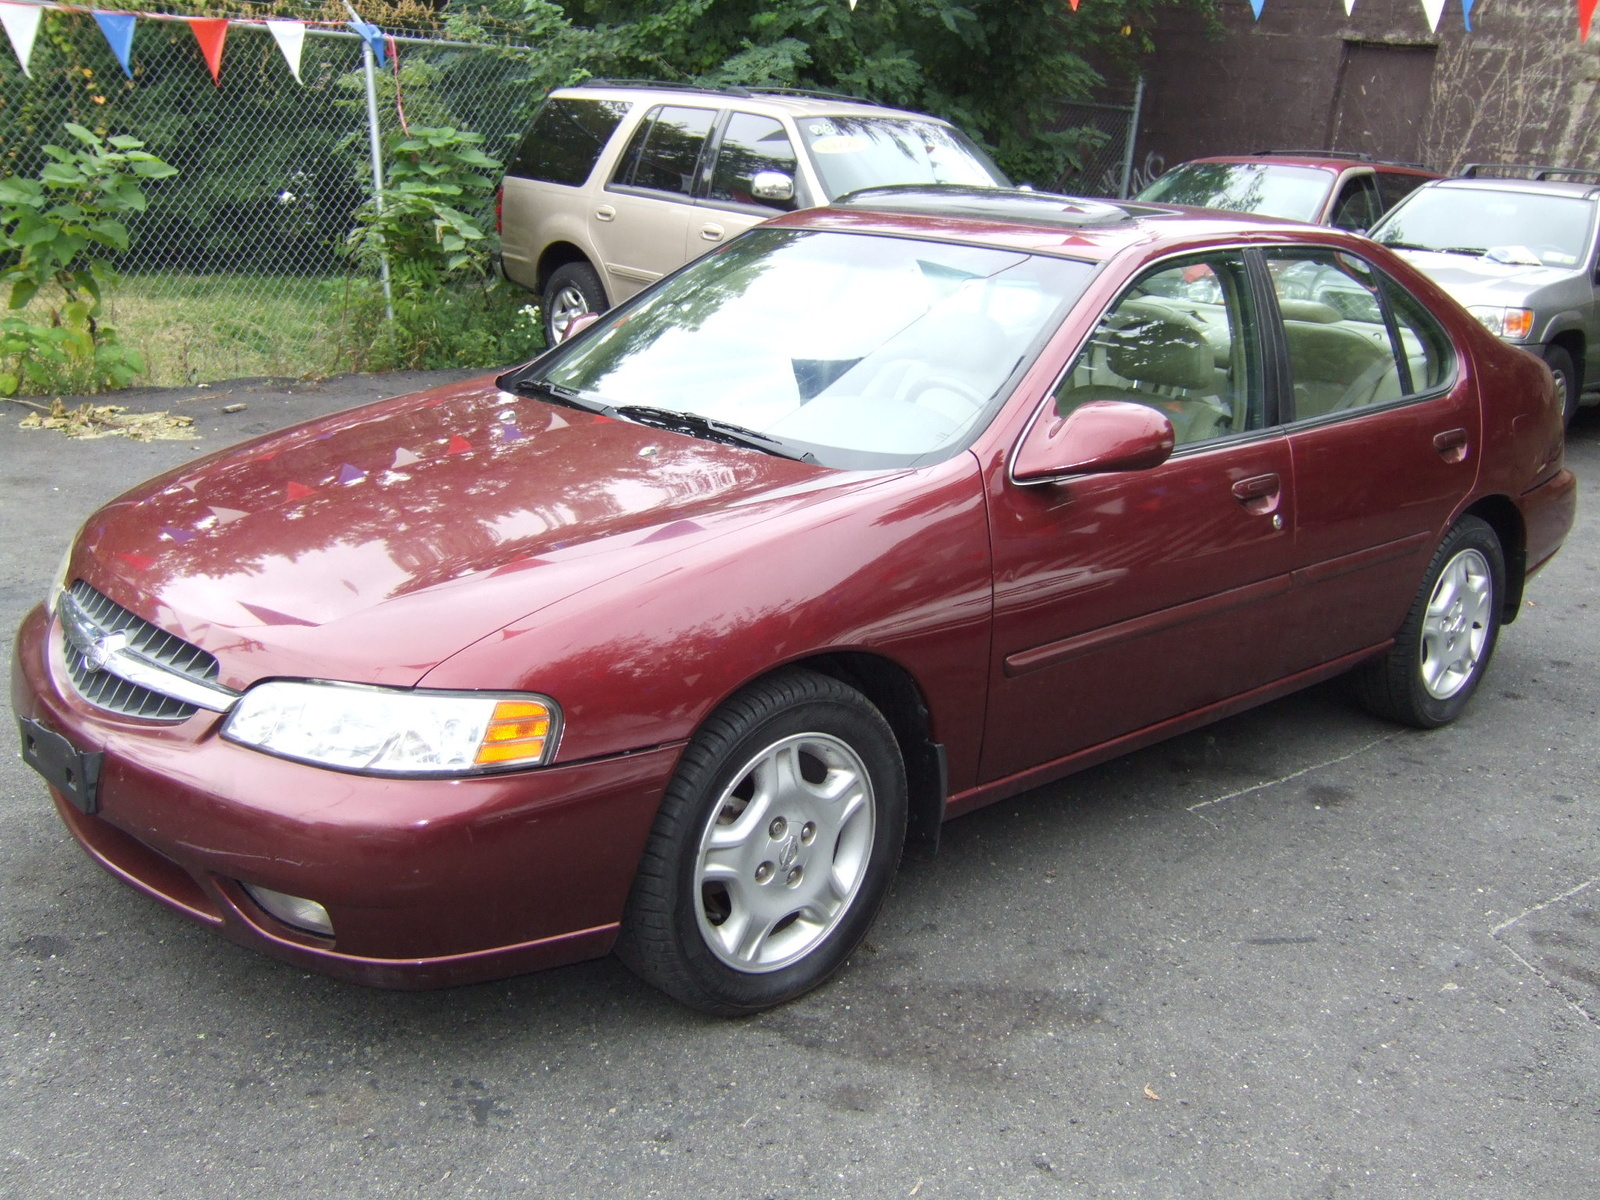 1999 Honda Accord Overview Cargurus 4 Door Picture Of Nissan Altima Gle Exterior Gallery Worthy